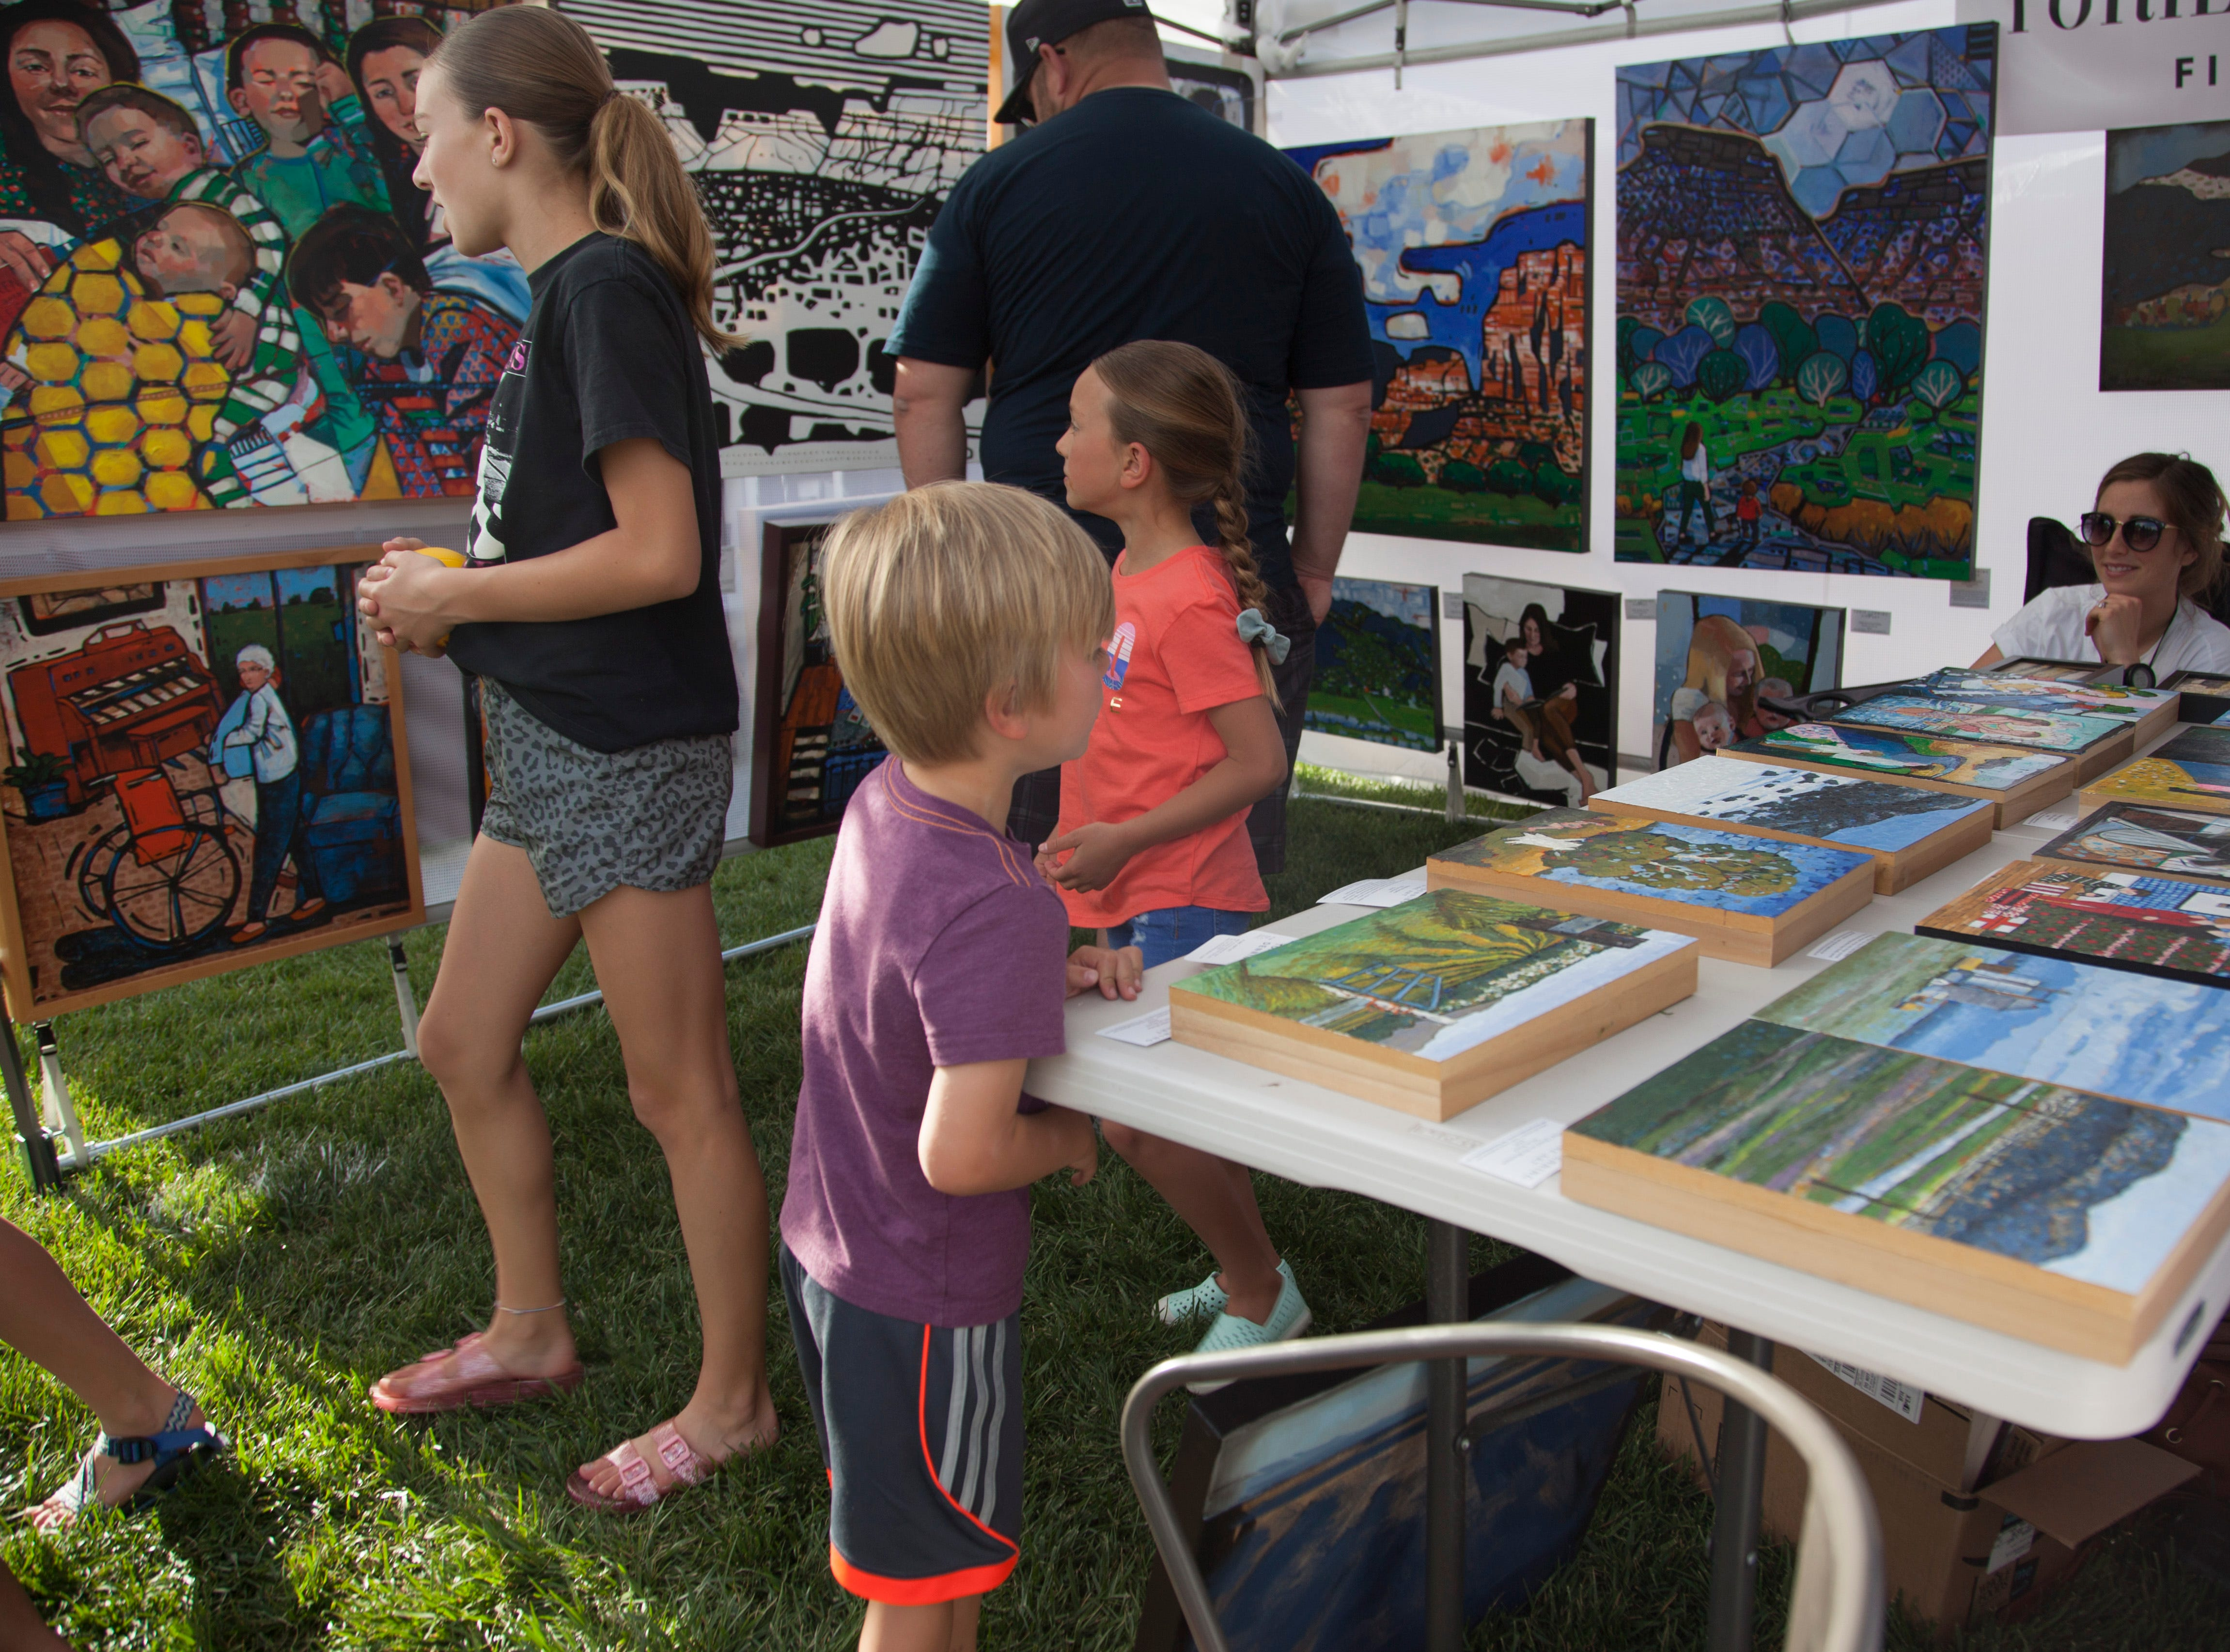 Community members enjoy art and entertainment at the St. George Art Festival Friday, April 19, 2019.